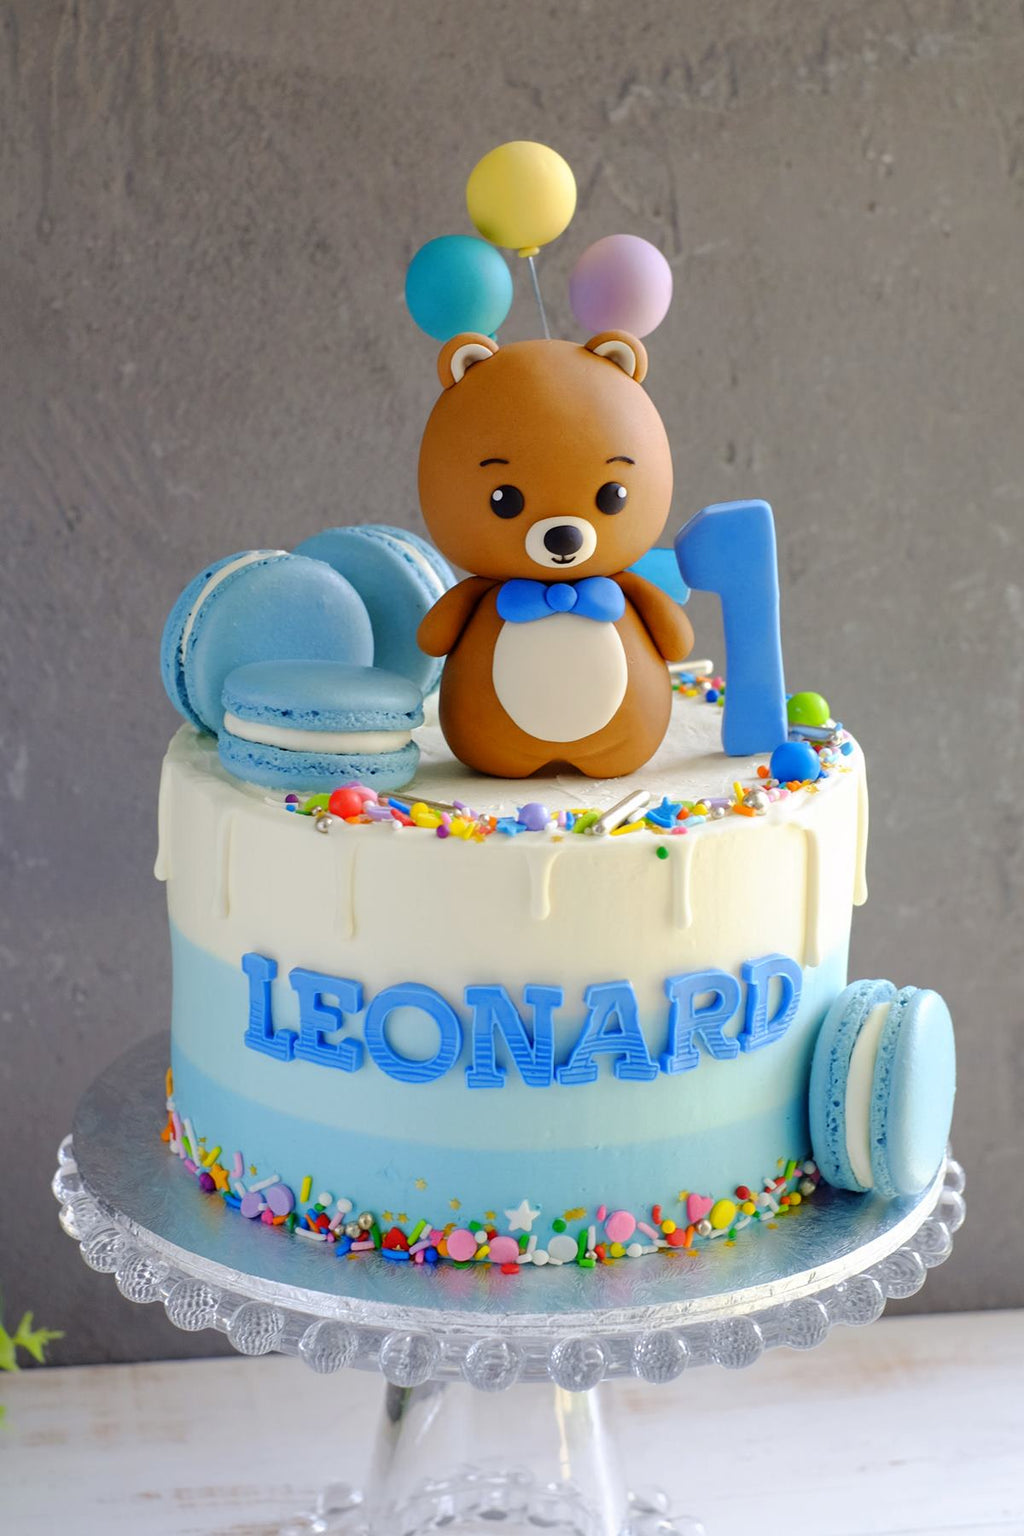 Teddy Bear Cake (Other Colors Available)